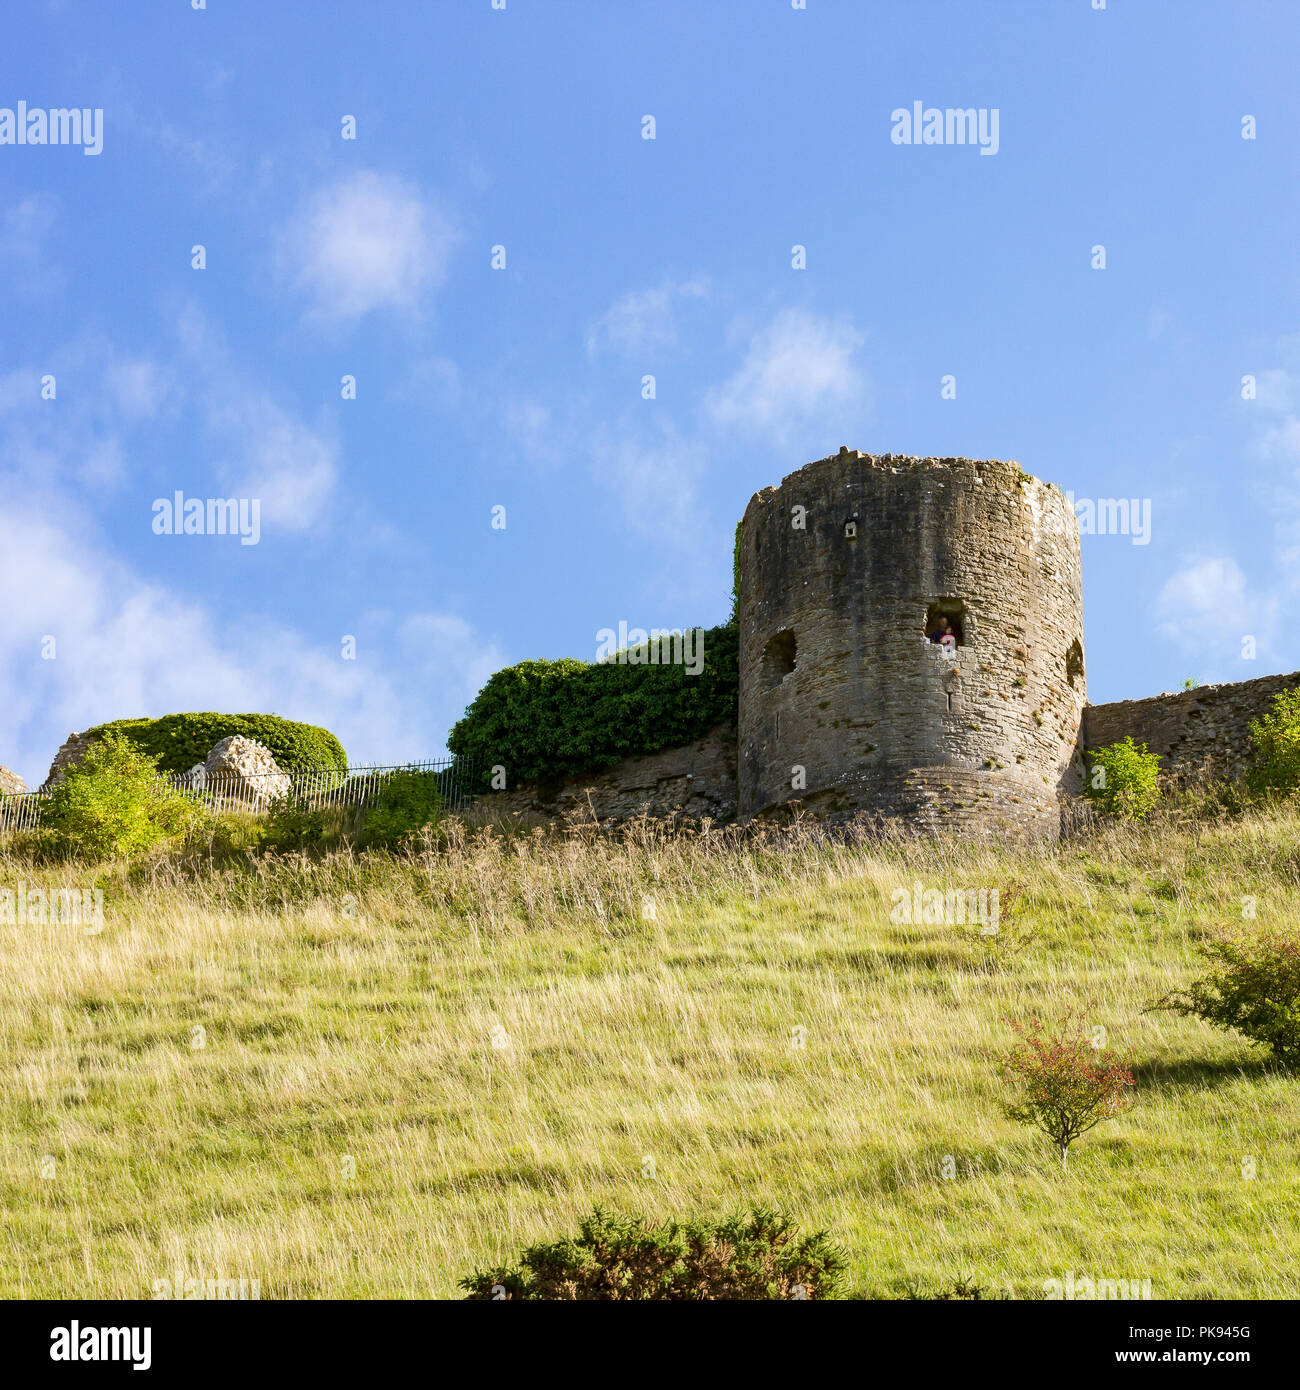 Corfe Castle, part of the castle ruins in square format, Dorset, UK - Stock Image